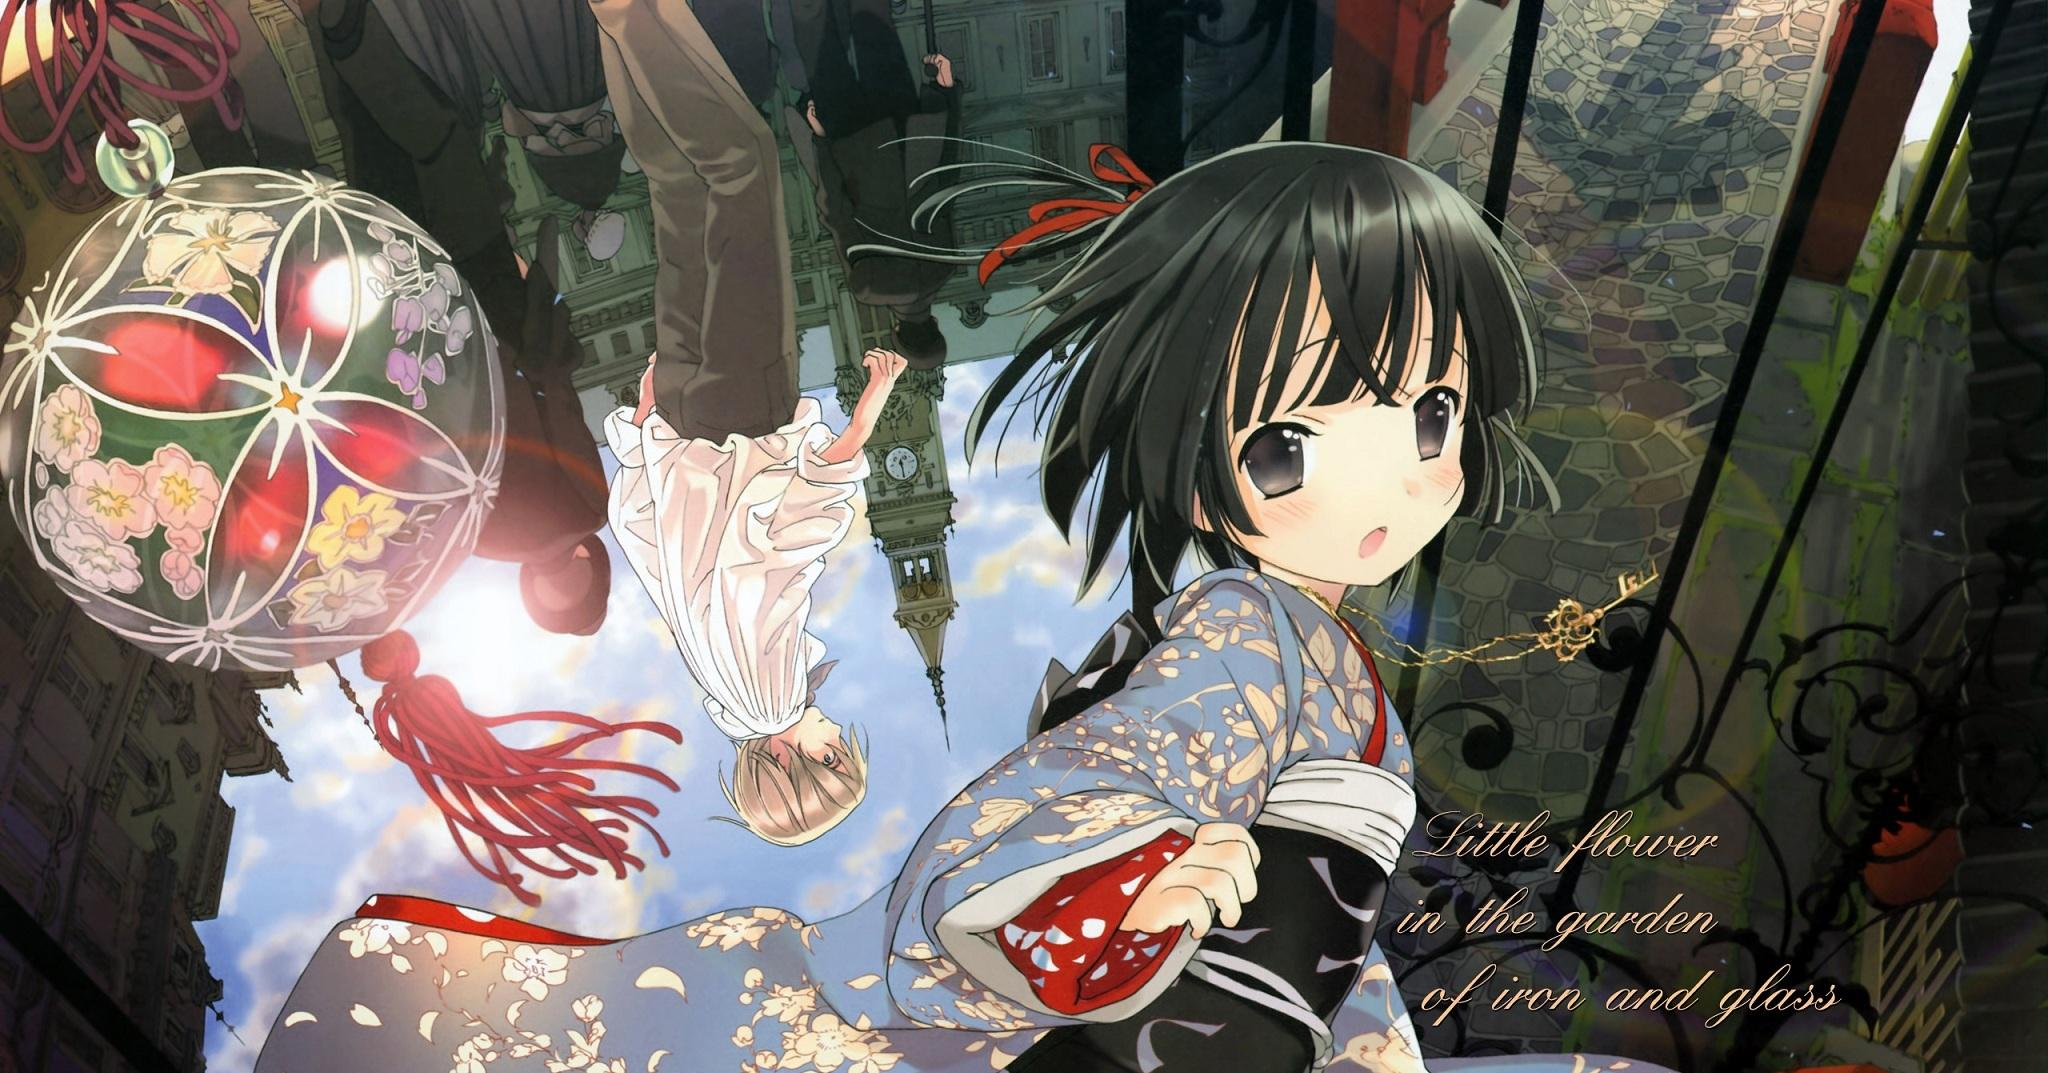 Ikoku Meiro No Croisee - Croisee in a Foreign Labyrinth - The Animation